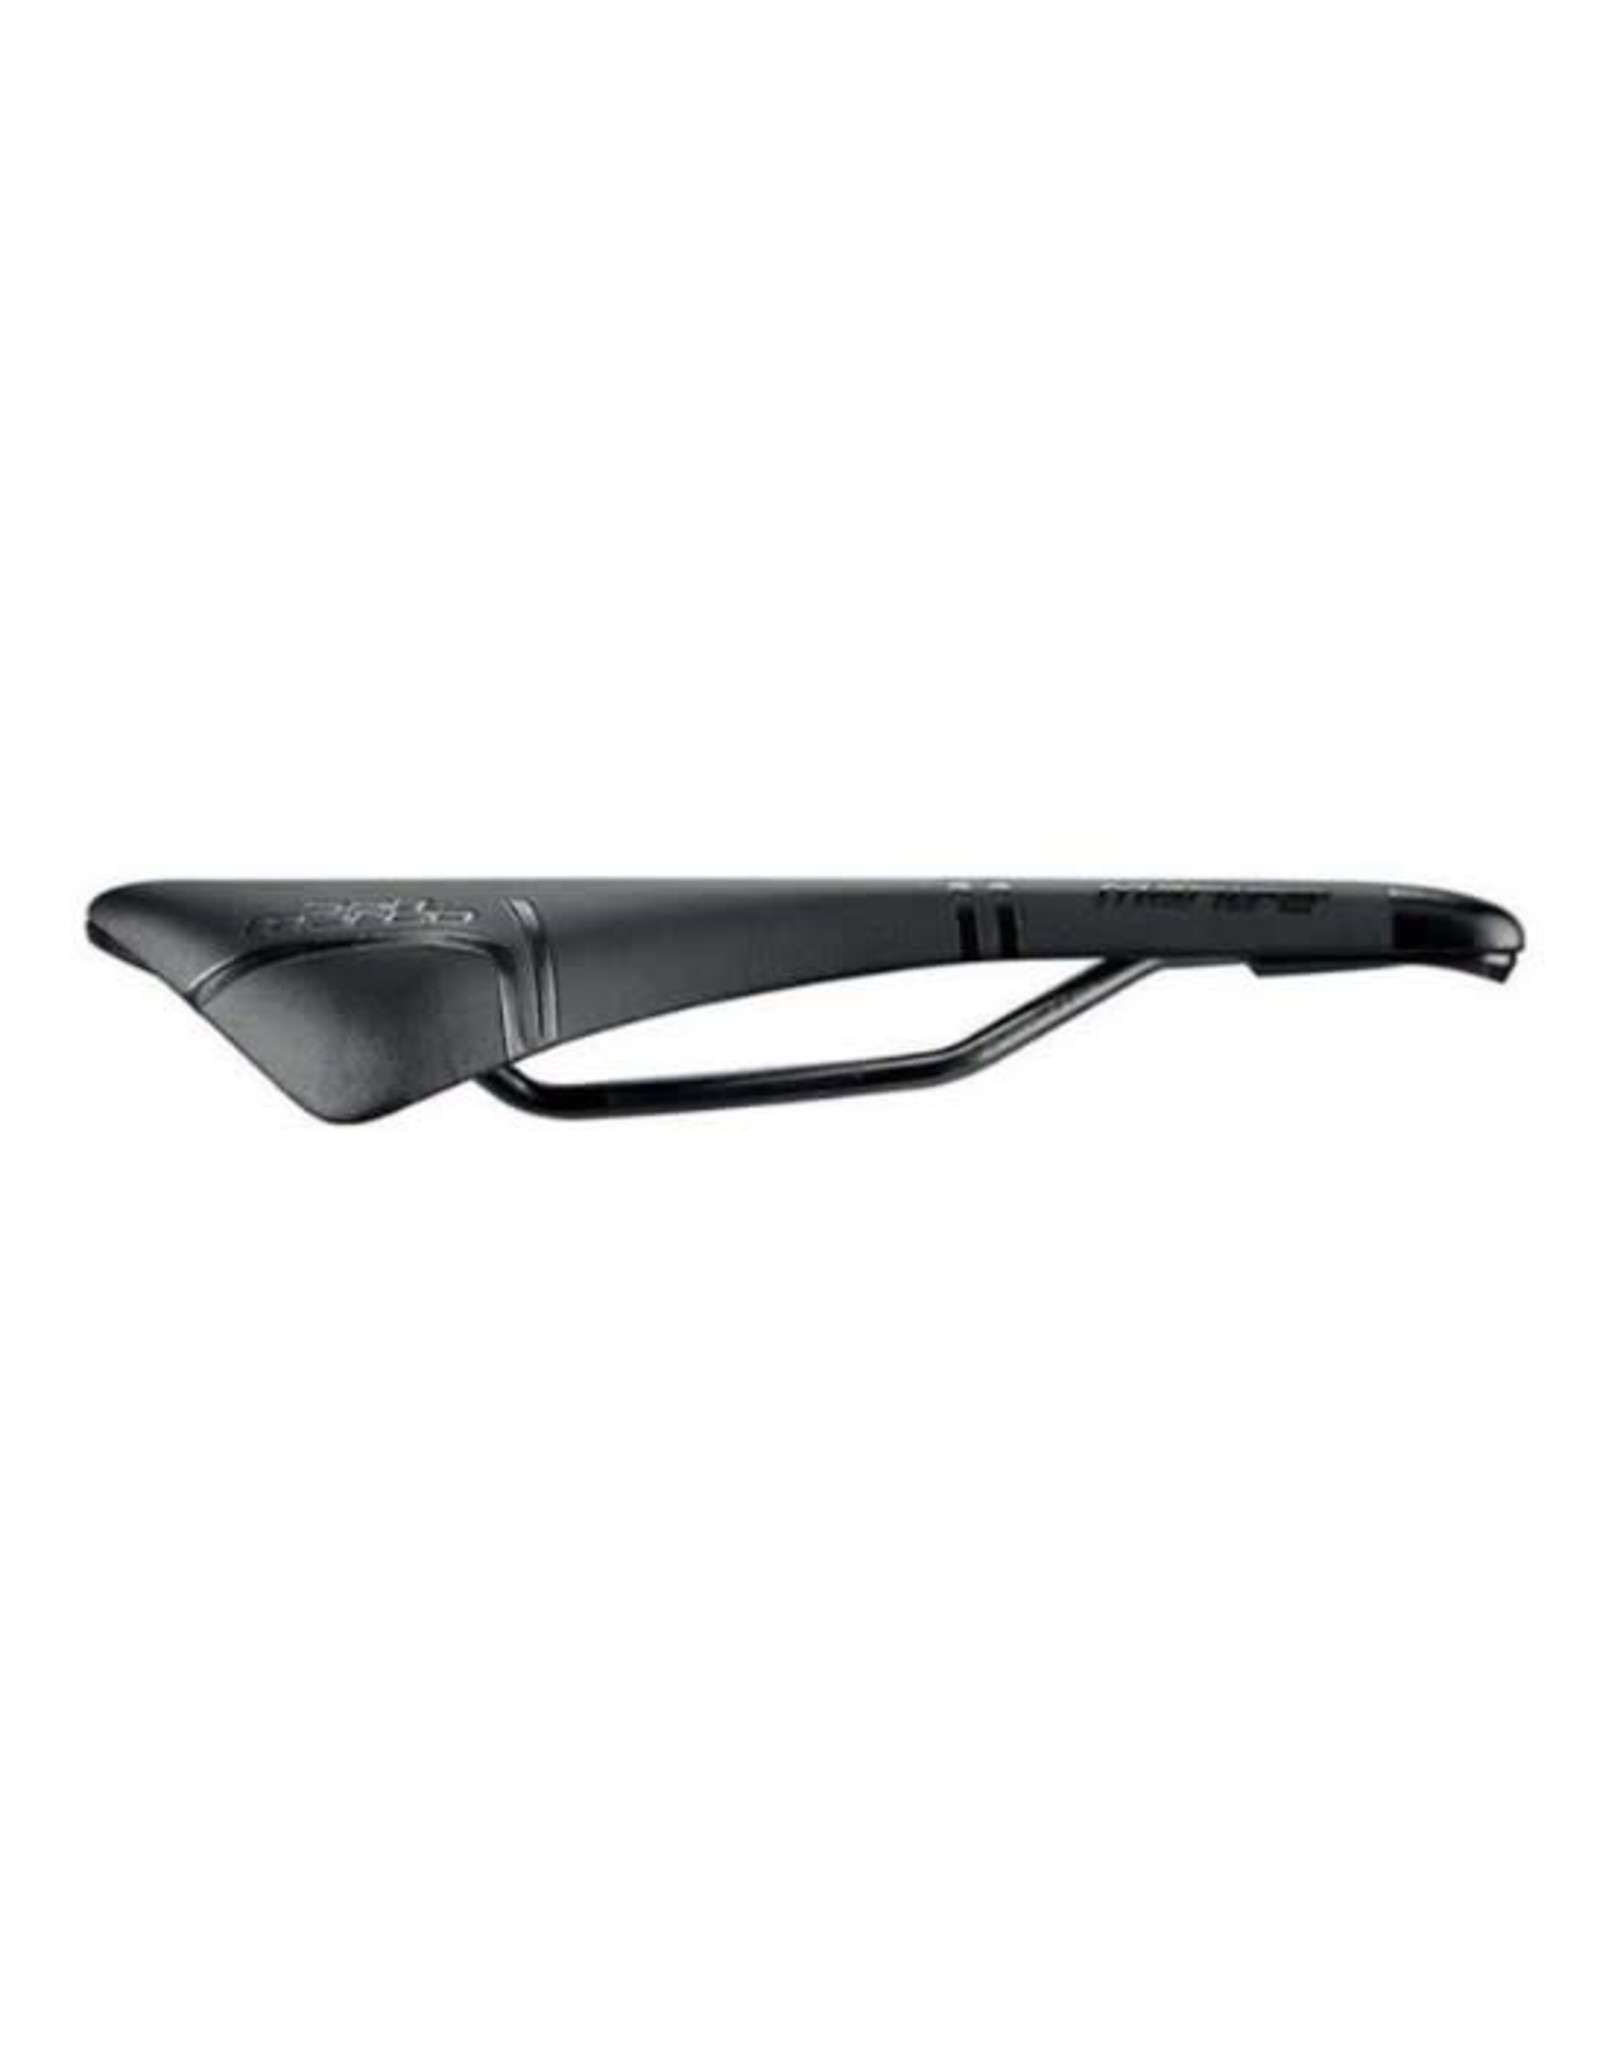 San Marco Selle San Marco Mantra Racing large 278x146mm 194g